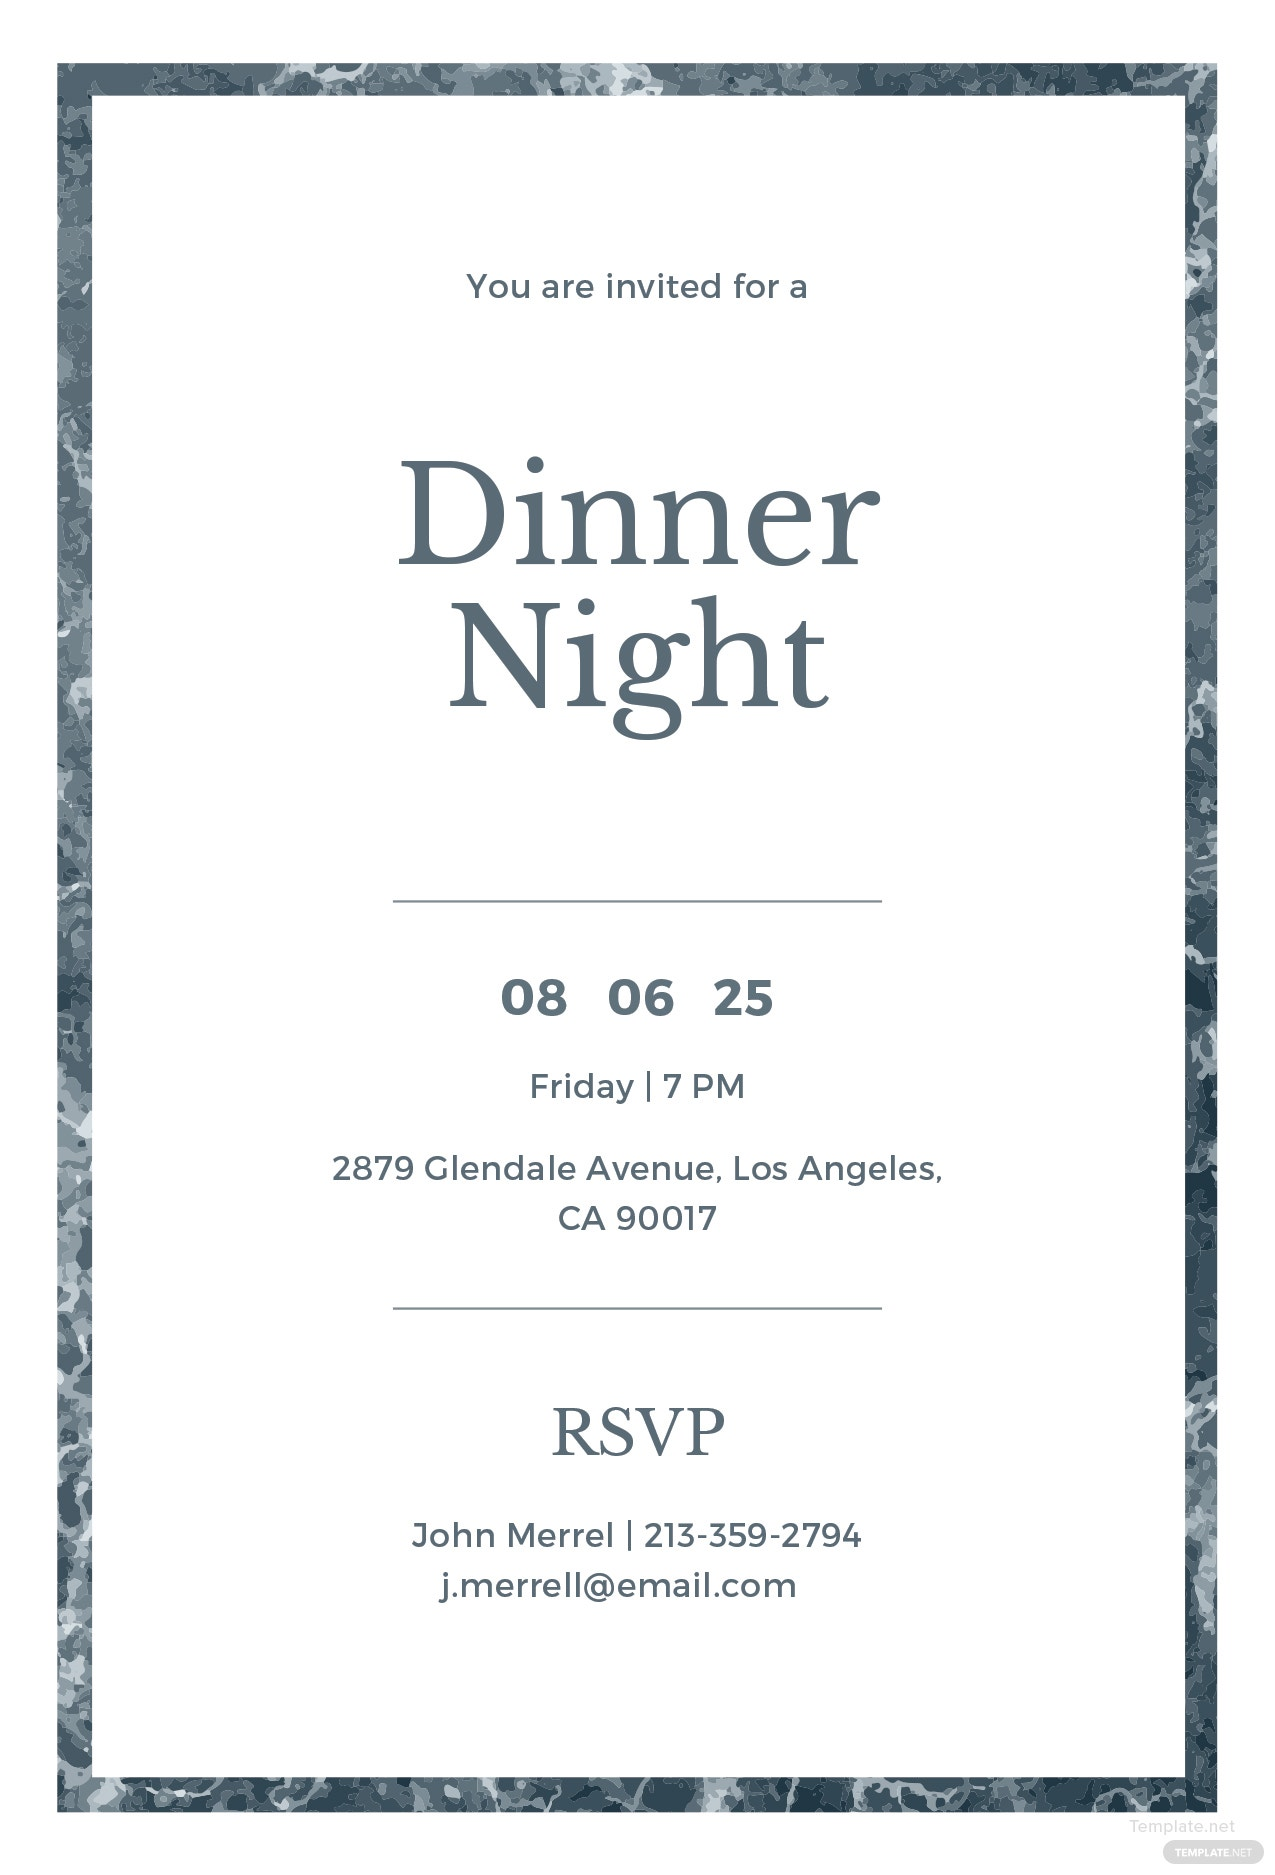 Free Sample Dinner Invitation Template in Adobe ...